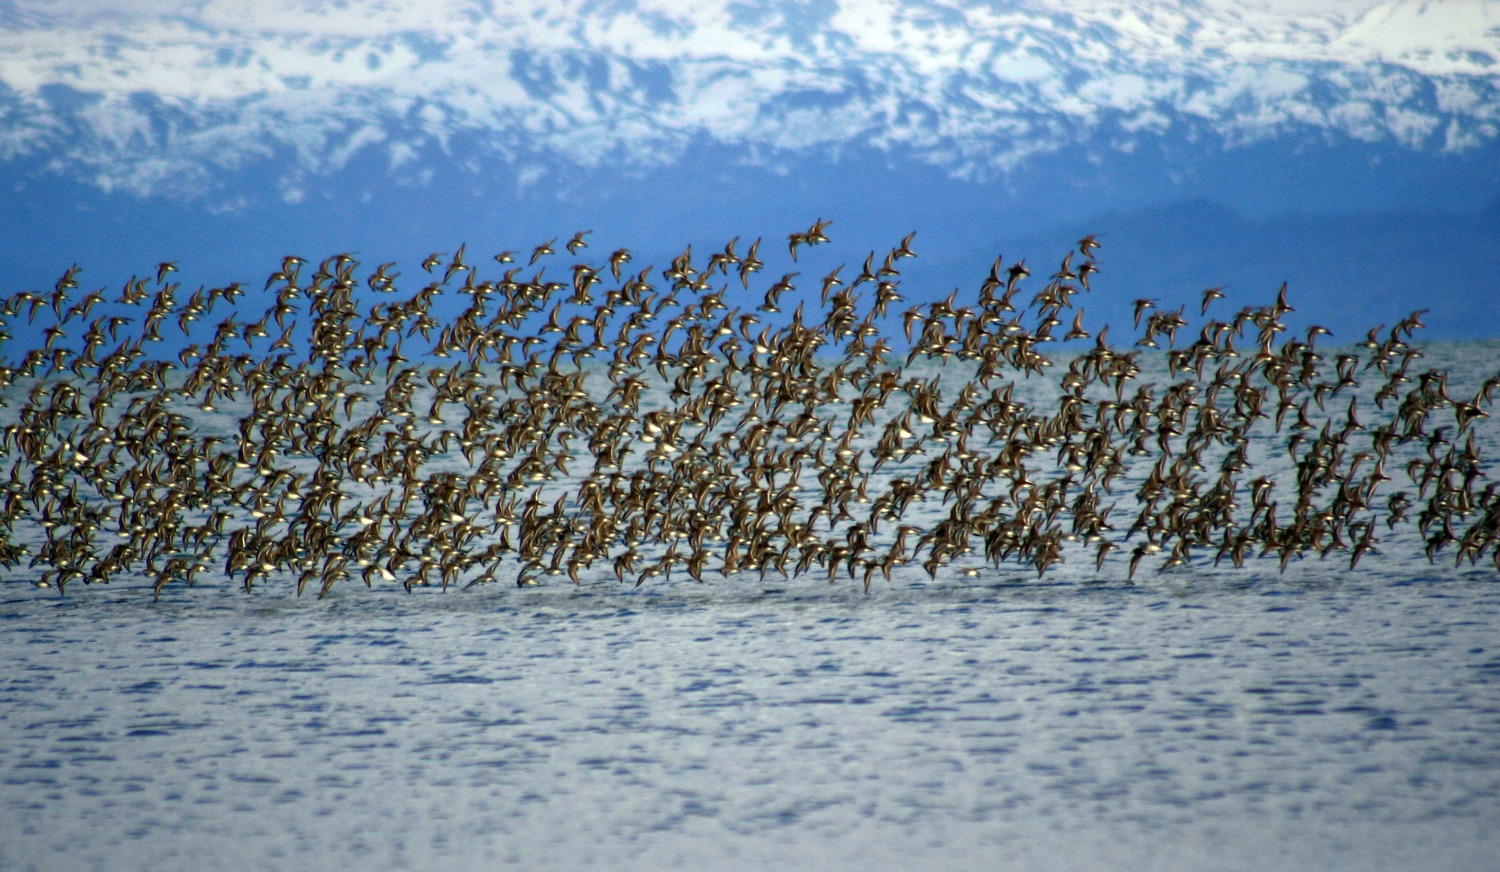 Sandpipers in flight reduced